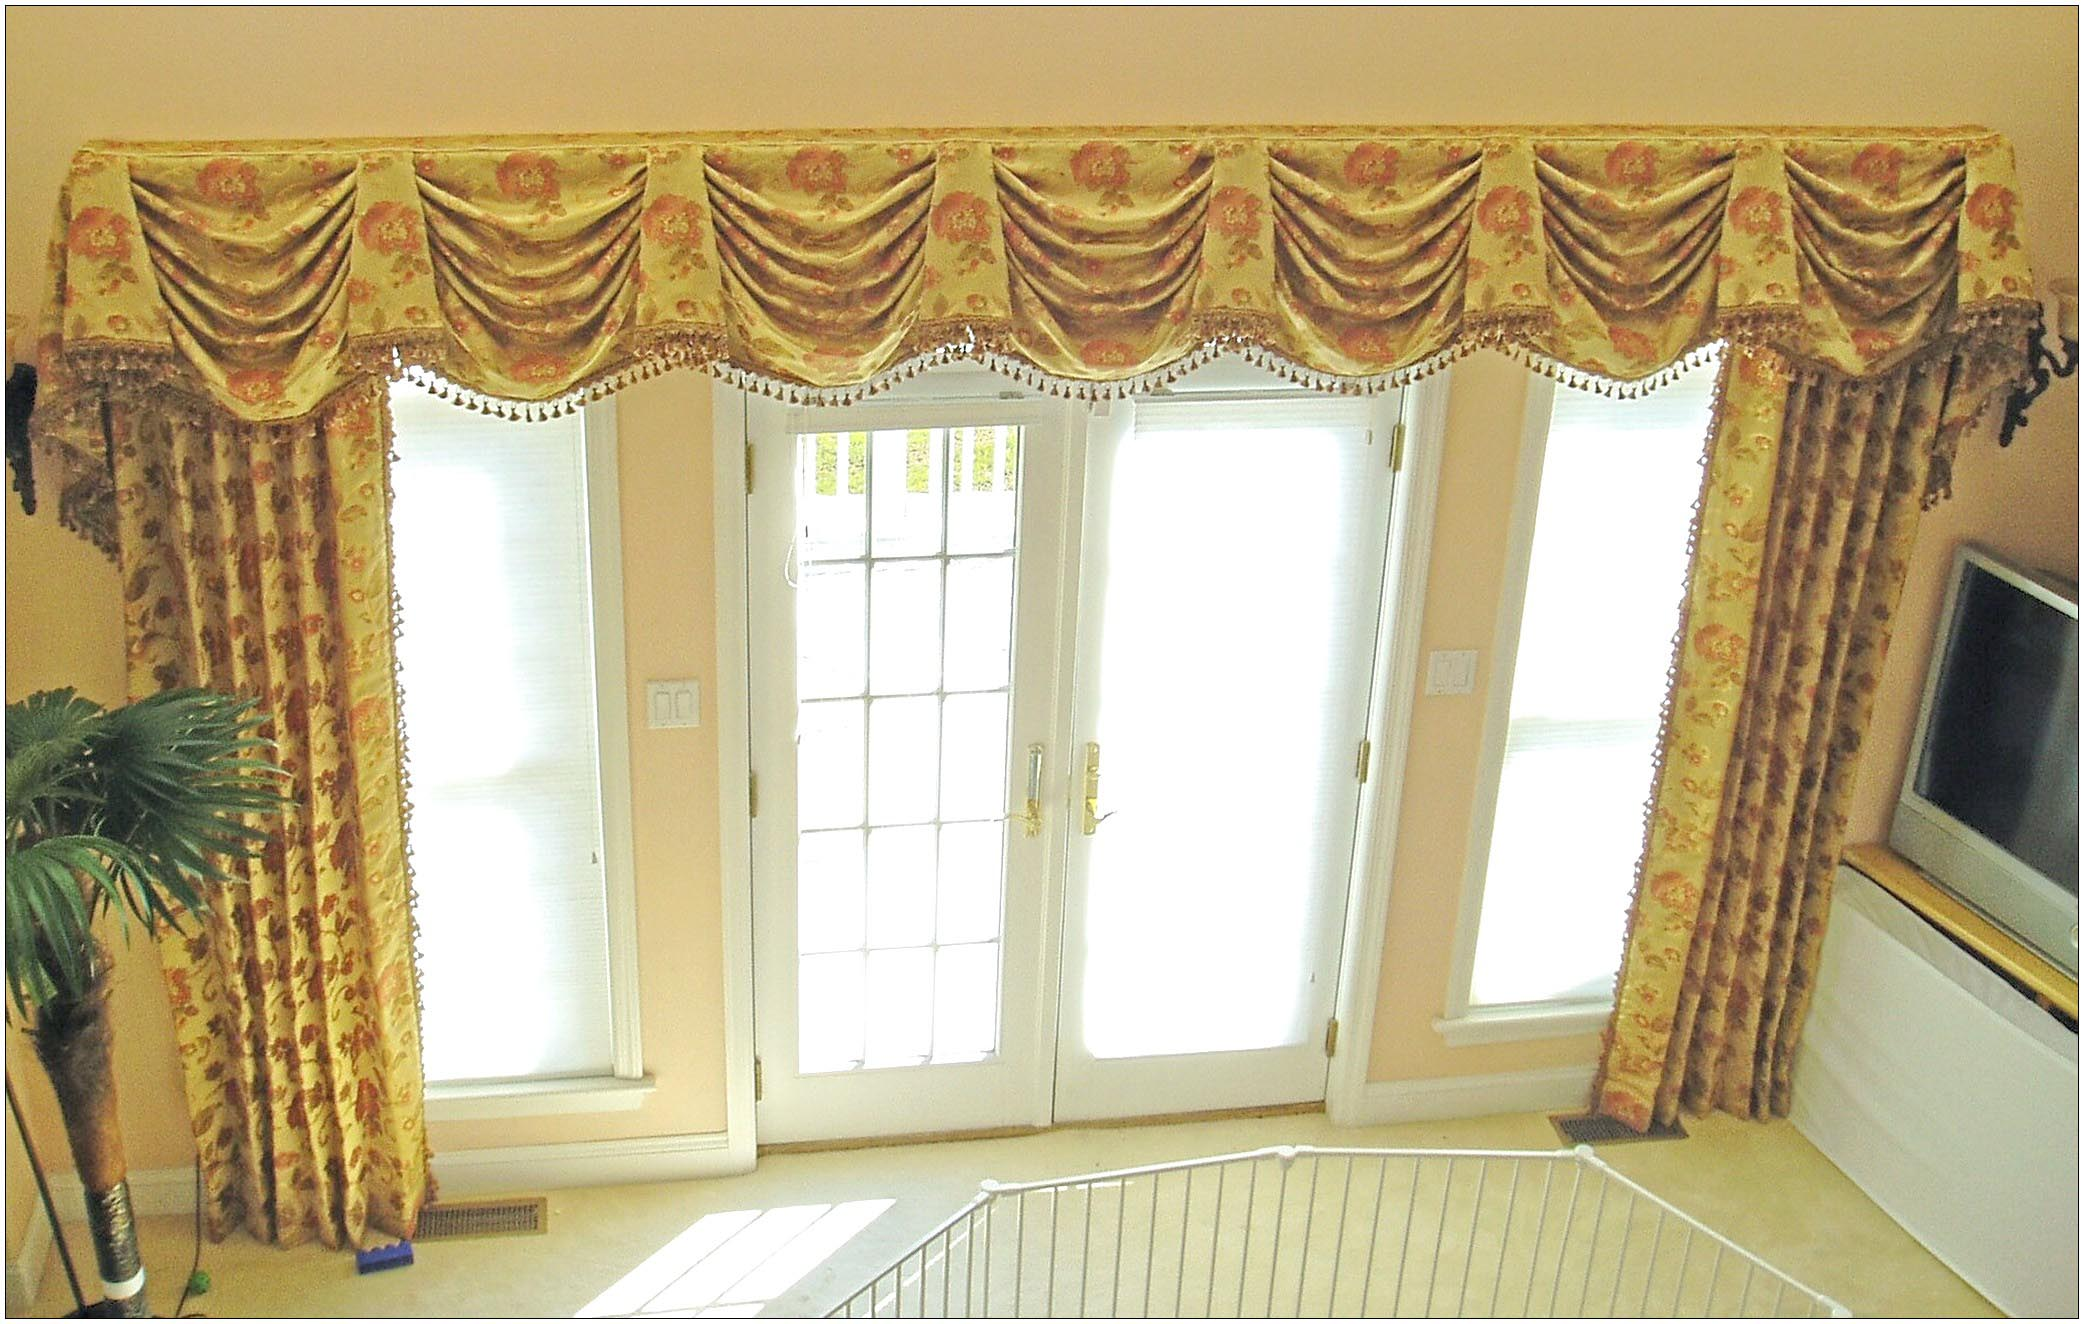 Custom window valance designs window treatments design ideas for 2016 window design